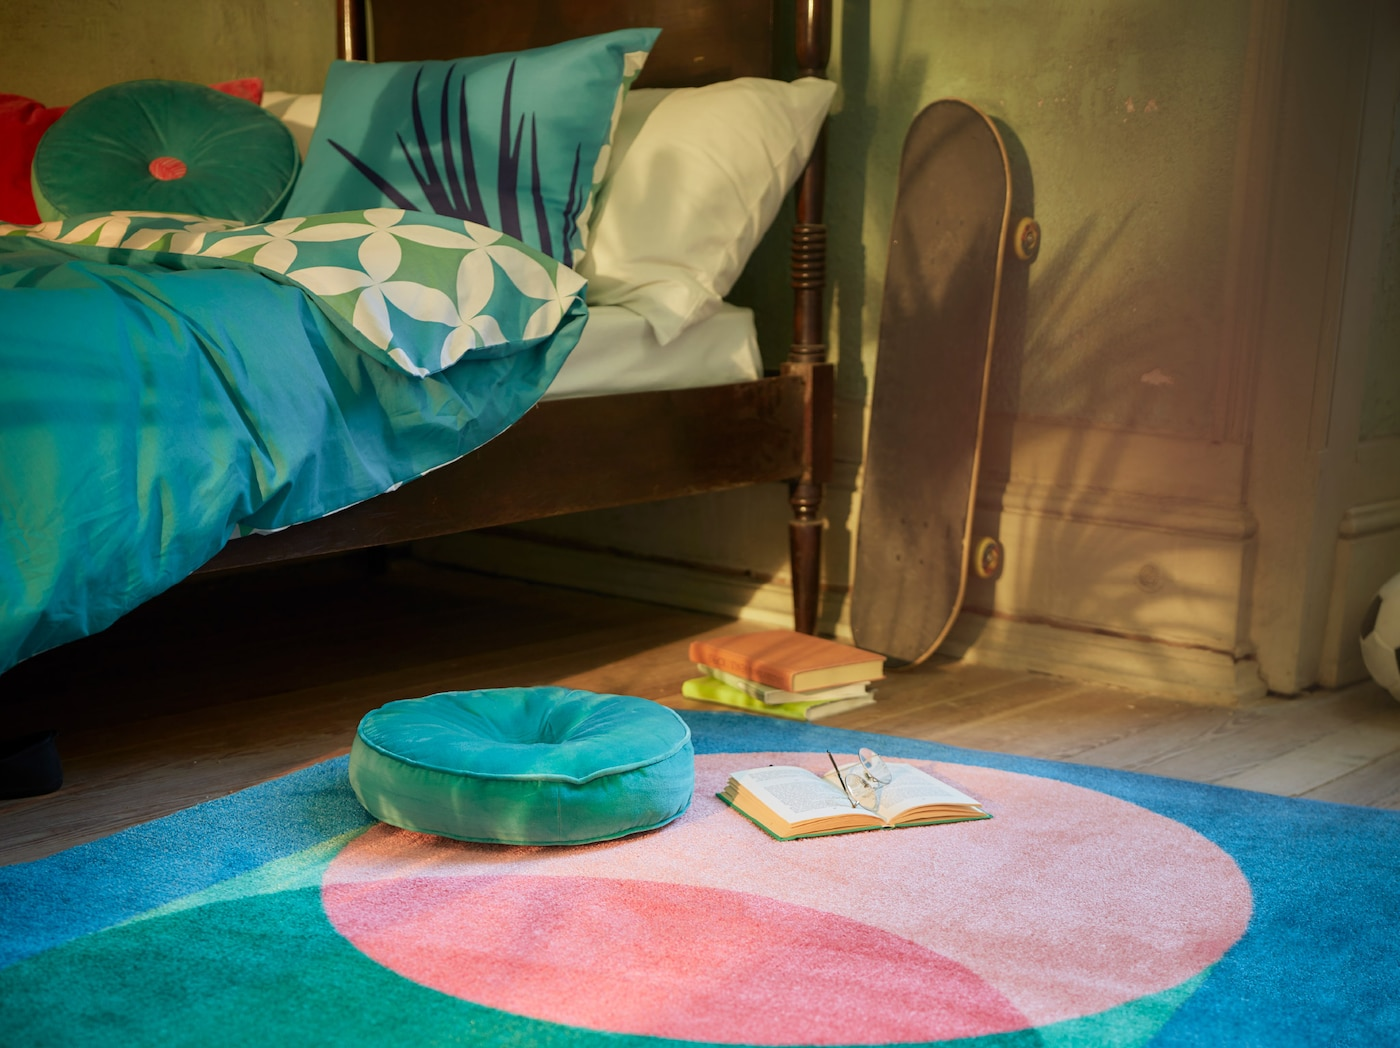 A bedroom with GRACIÖS textile series in turquoise tones including a quilt cover, patterned rug and a round velvet cushion.